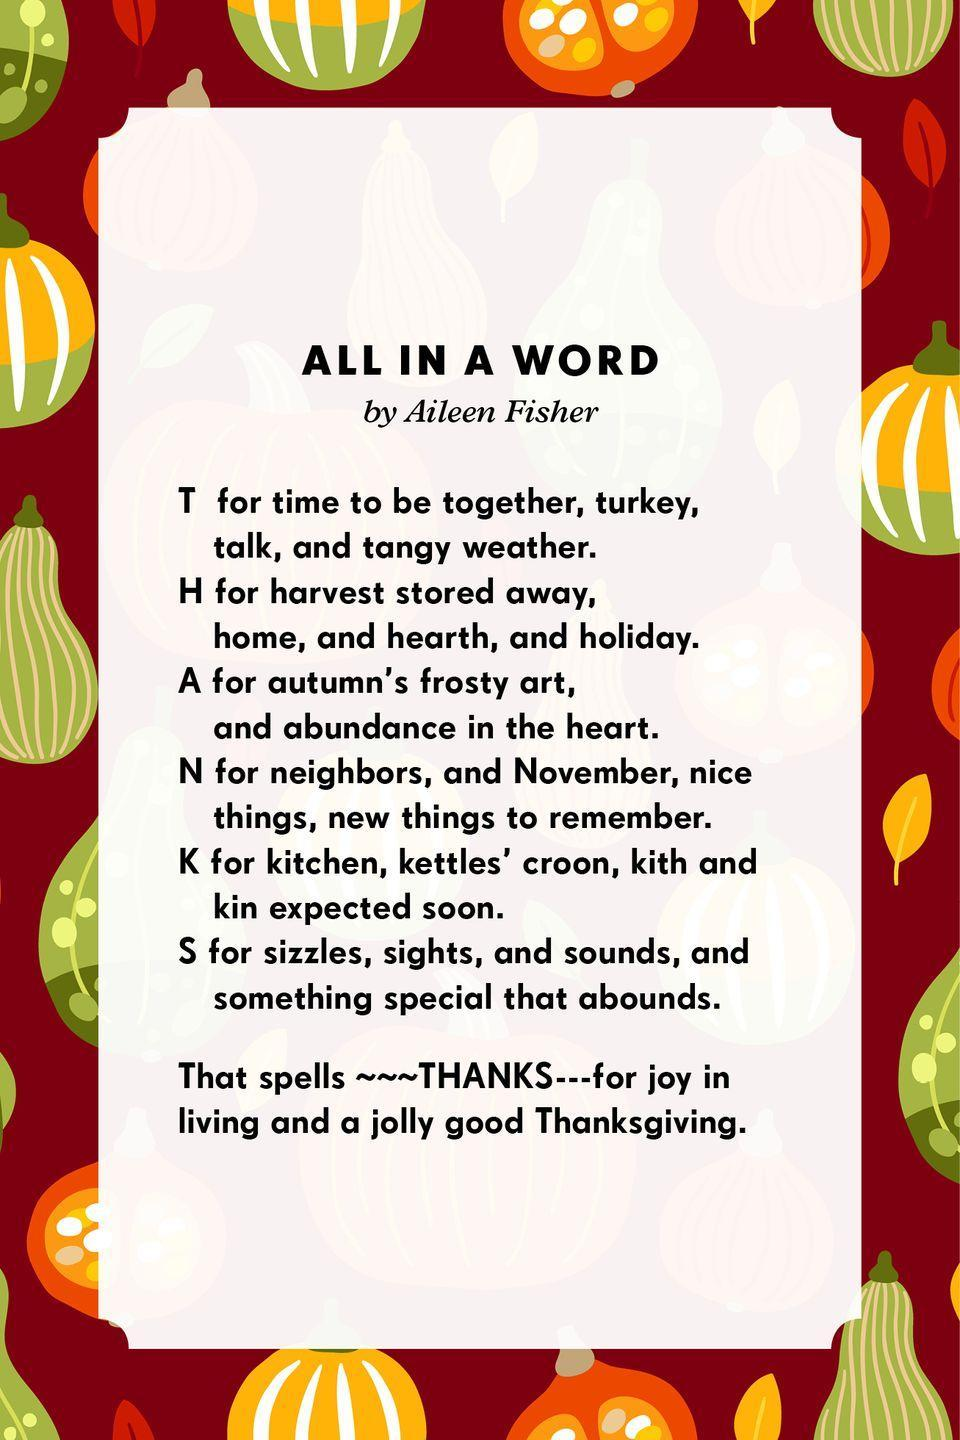 <p><strong>All in a Word</strong></p><p><strong>T </strong>for time to be together, turkey, talk, and tangy weather.<strong><br>H</strong> for harvest stored away, home, and hearth, and holiday.<strong><br>A</strong> for autumn's frosty art, and abundance in the heart.<strong><br>N</strong> for neighbors, and November, nice things, new things to remember.<strong><br>K</strong> for kitchen, kettles' croon, kith and kin expected soon.<strong><br>S</strong> for sizzles, sights, and sounds, and something special that abounds.<br><br>That spells ~~~THANKS---for joy in living and a jolly good Thanksgiving.<br><br></p>